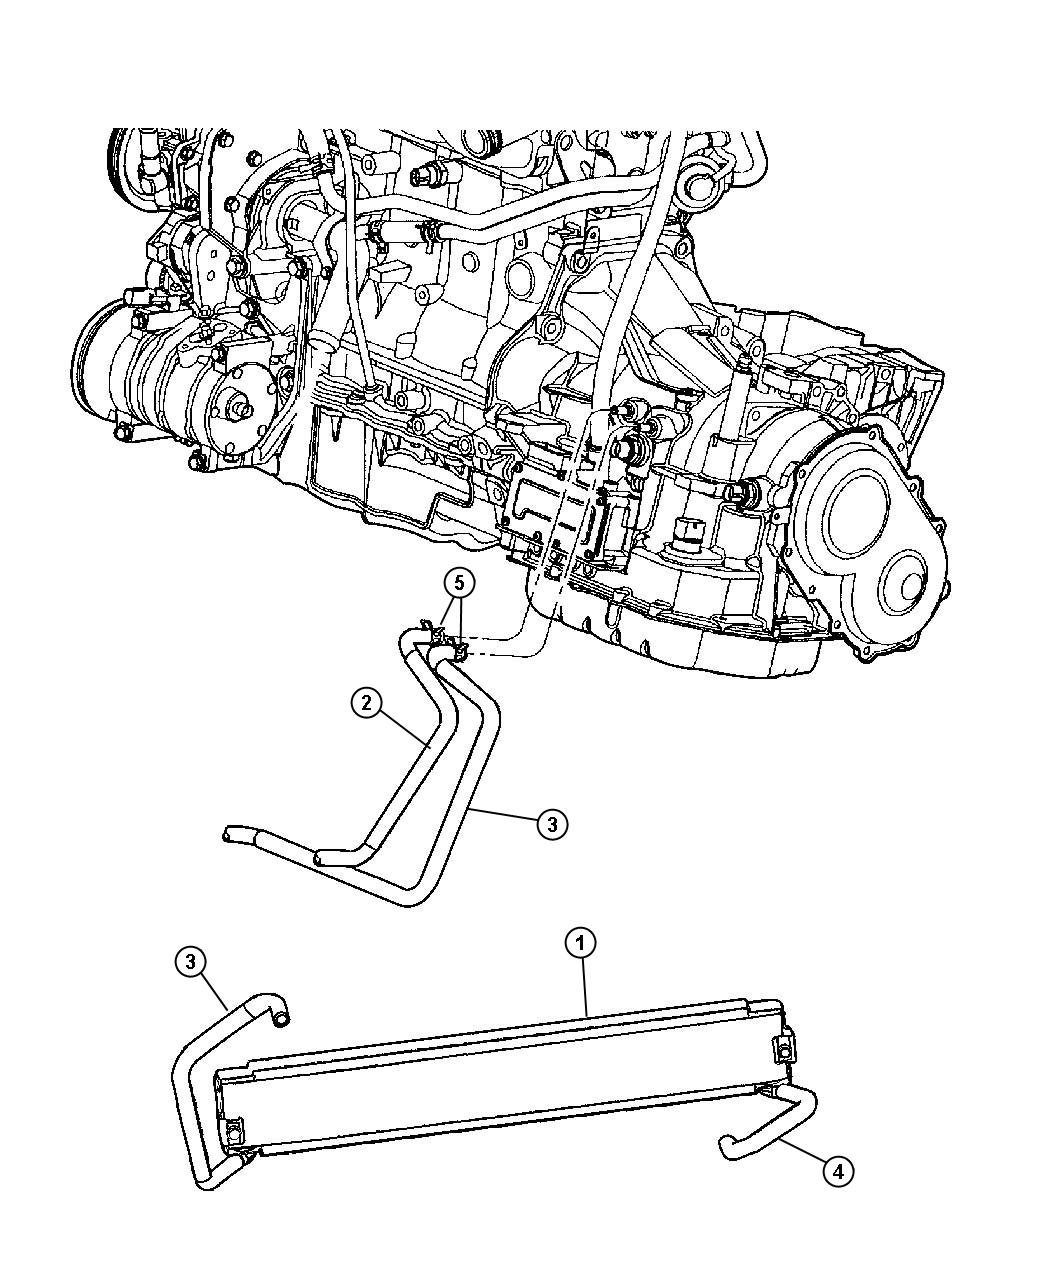 Chrysler Pt Cruiser Engine Diagram Similiar Pt